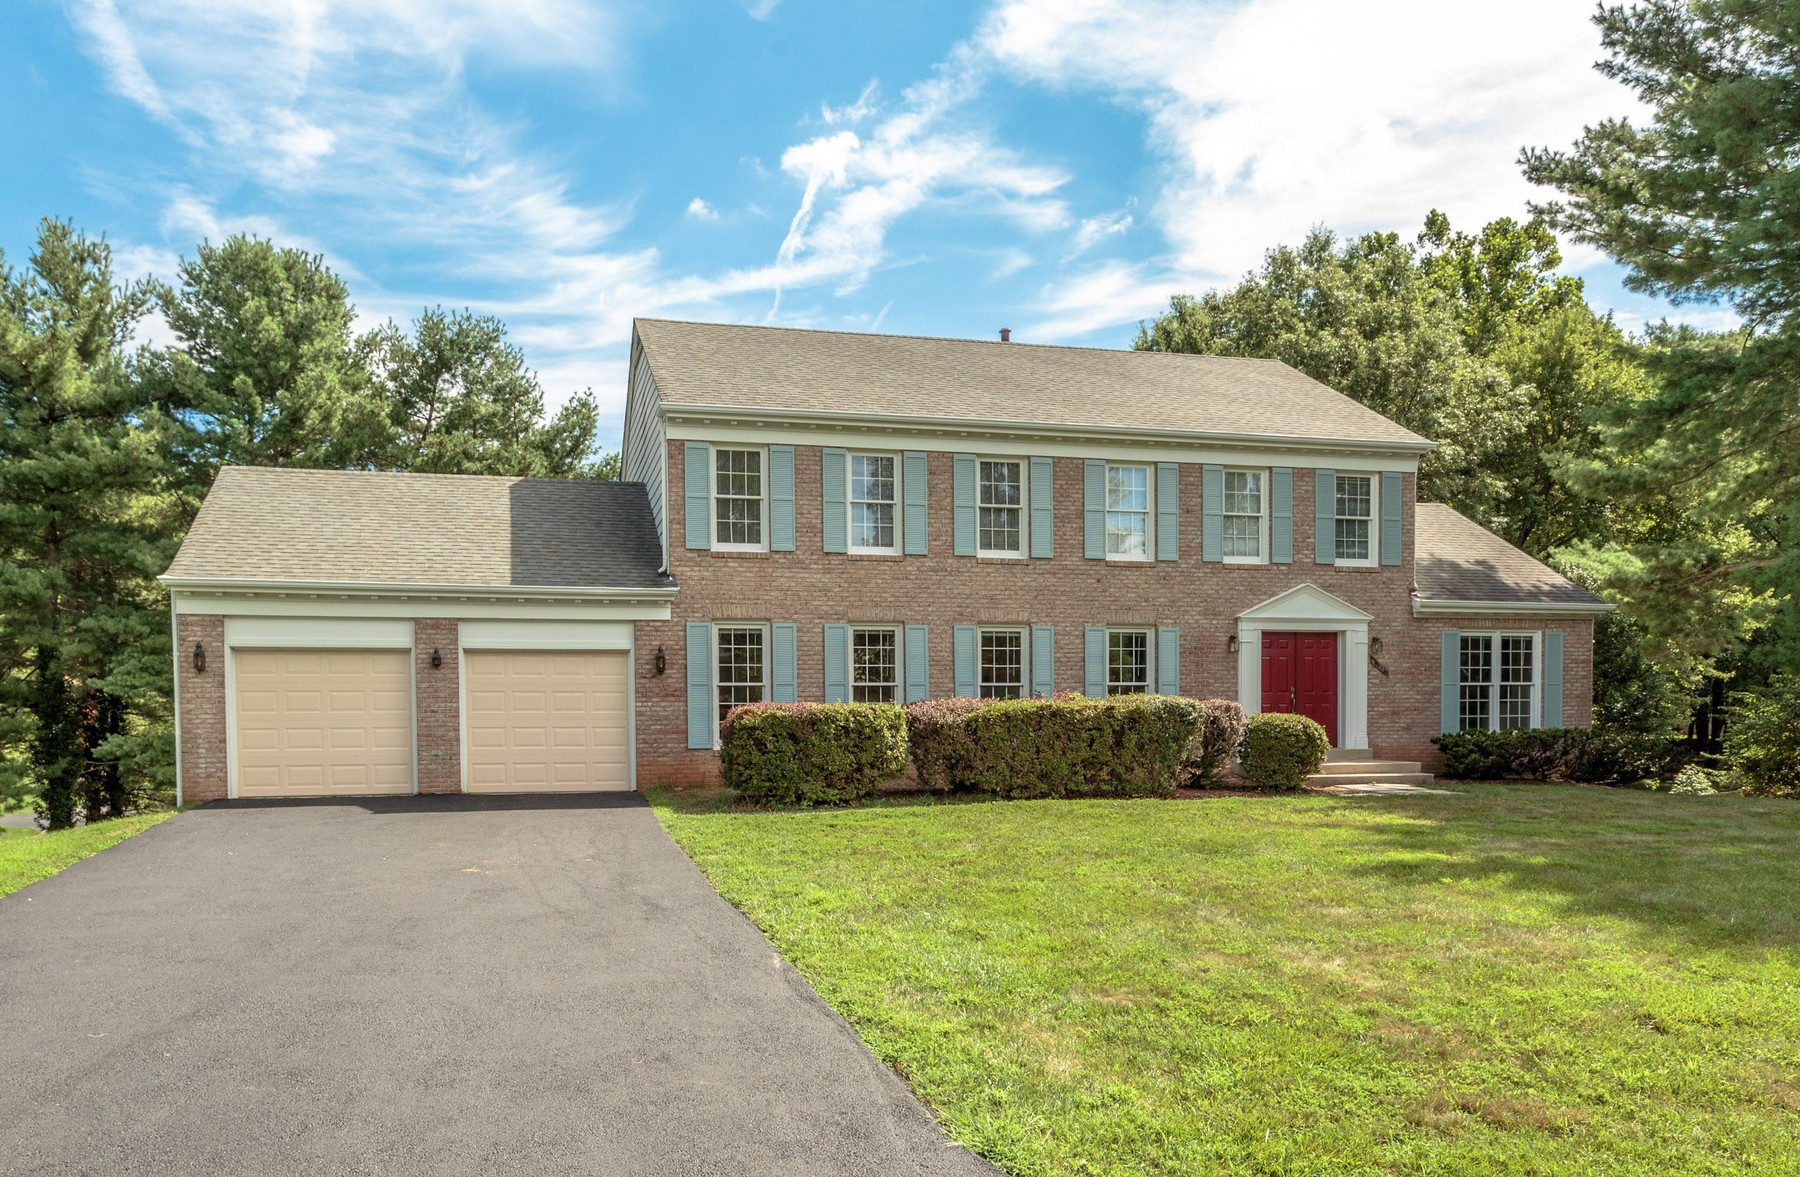 Maison unifamiliale pour l Vente à McLean Estates 8445 Holly Leaf Dr McLean, Virginia 22102 États-Unis